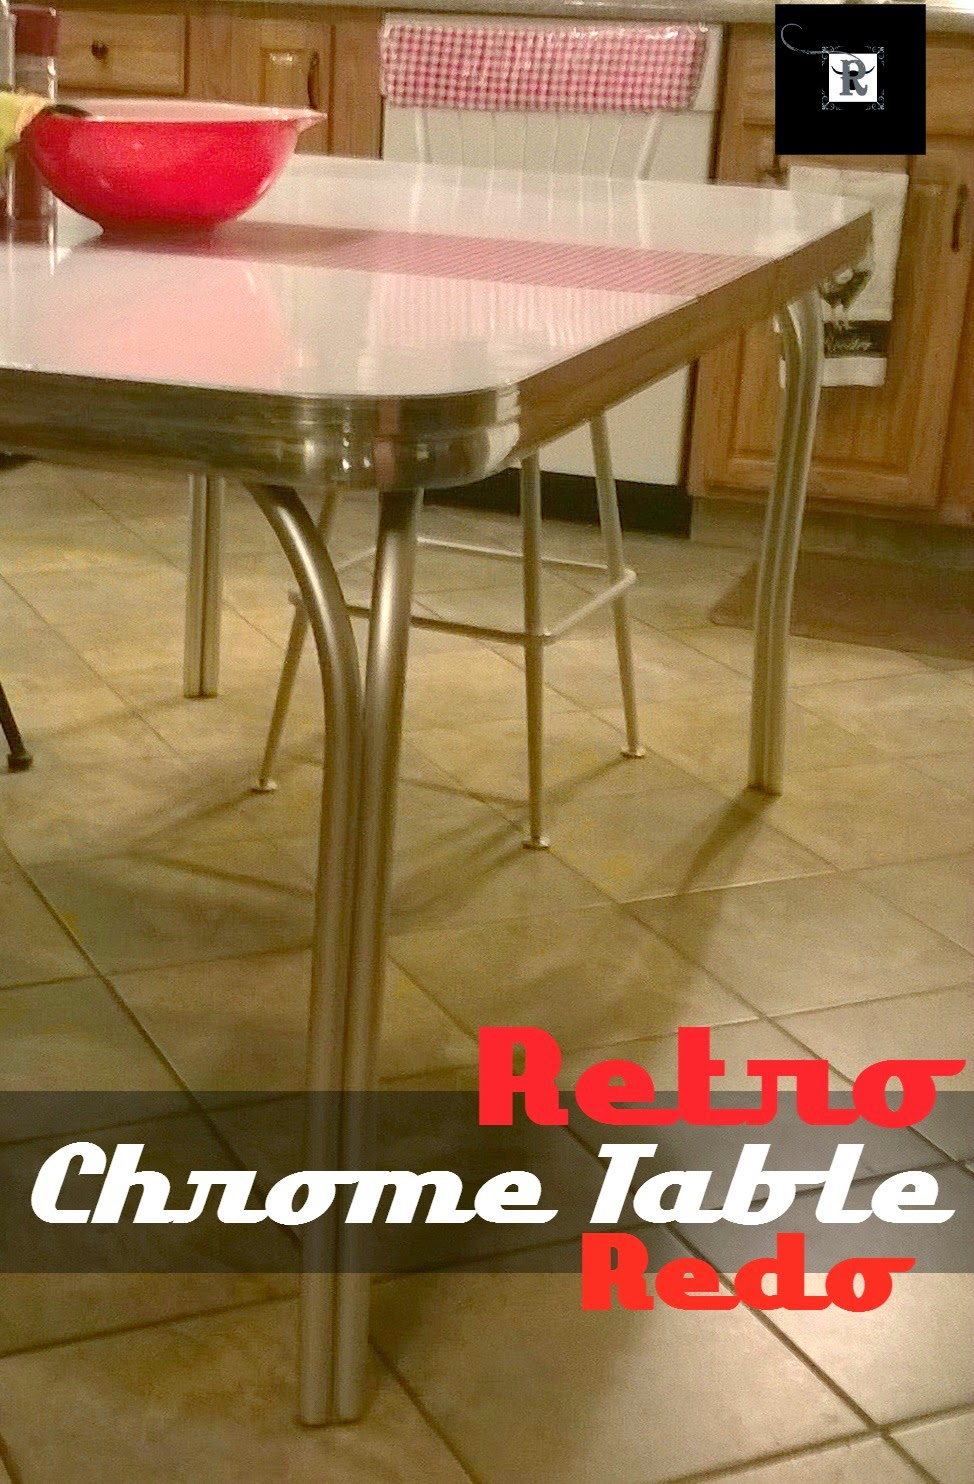 Awesome Retro Chrome Table Redo | Redo It Yourself Inspirations : Retro Chrome Table  Redo